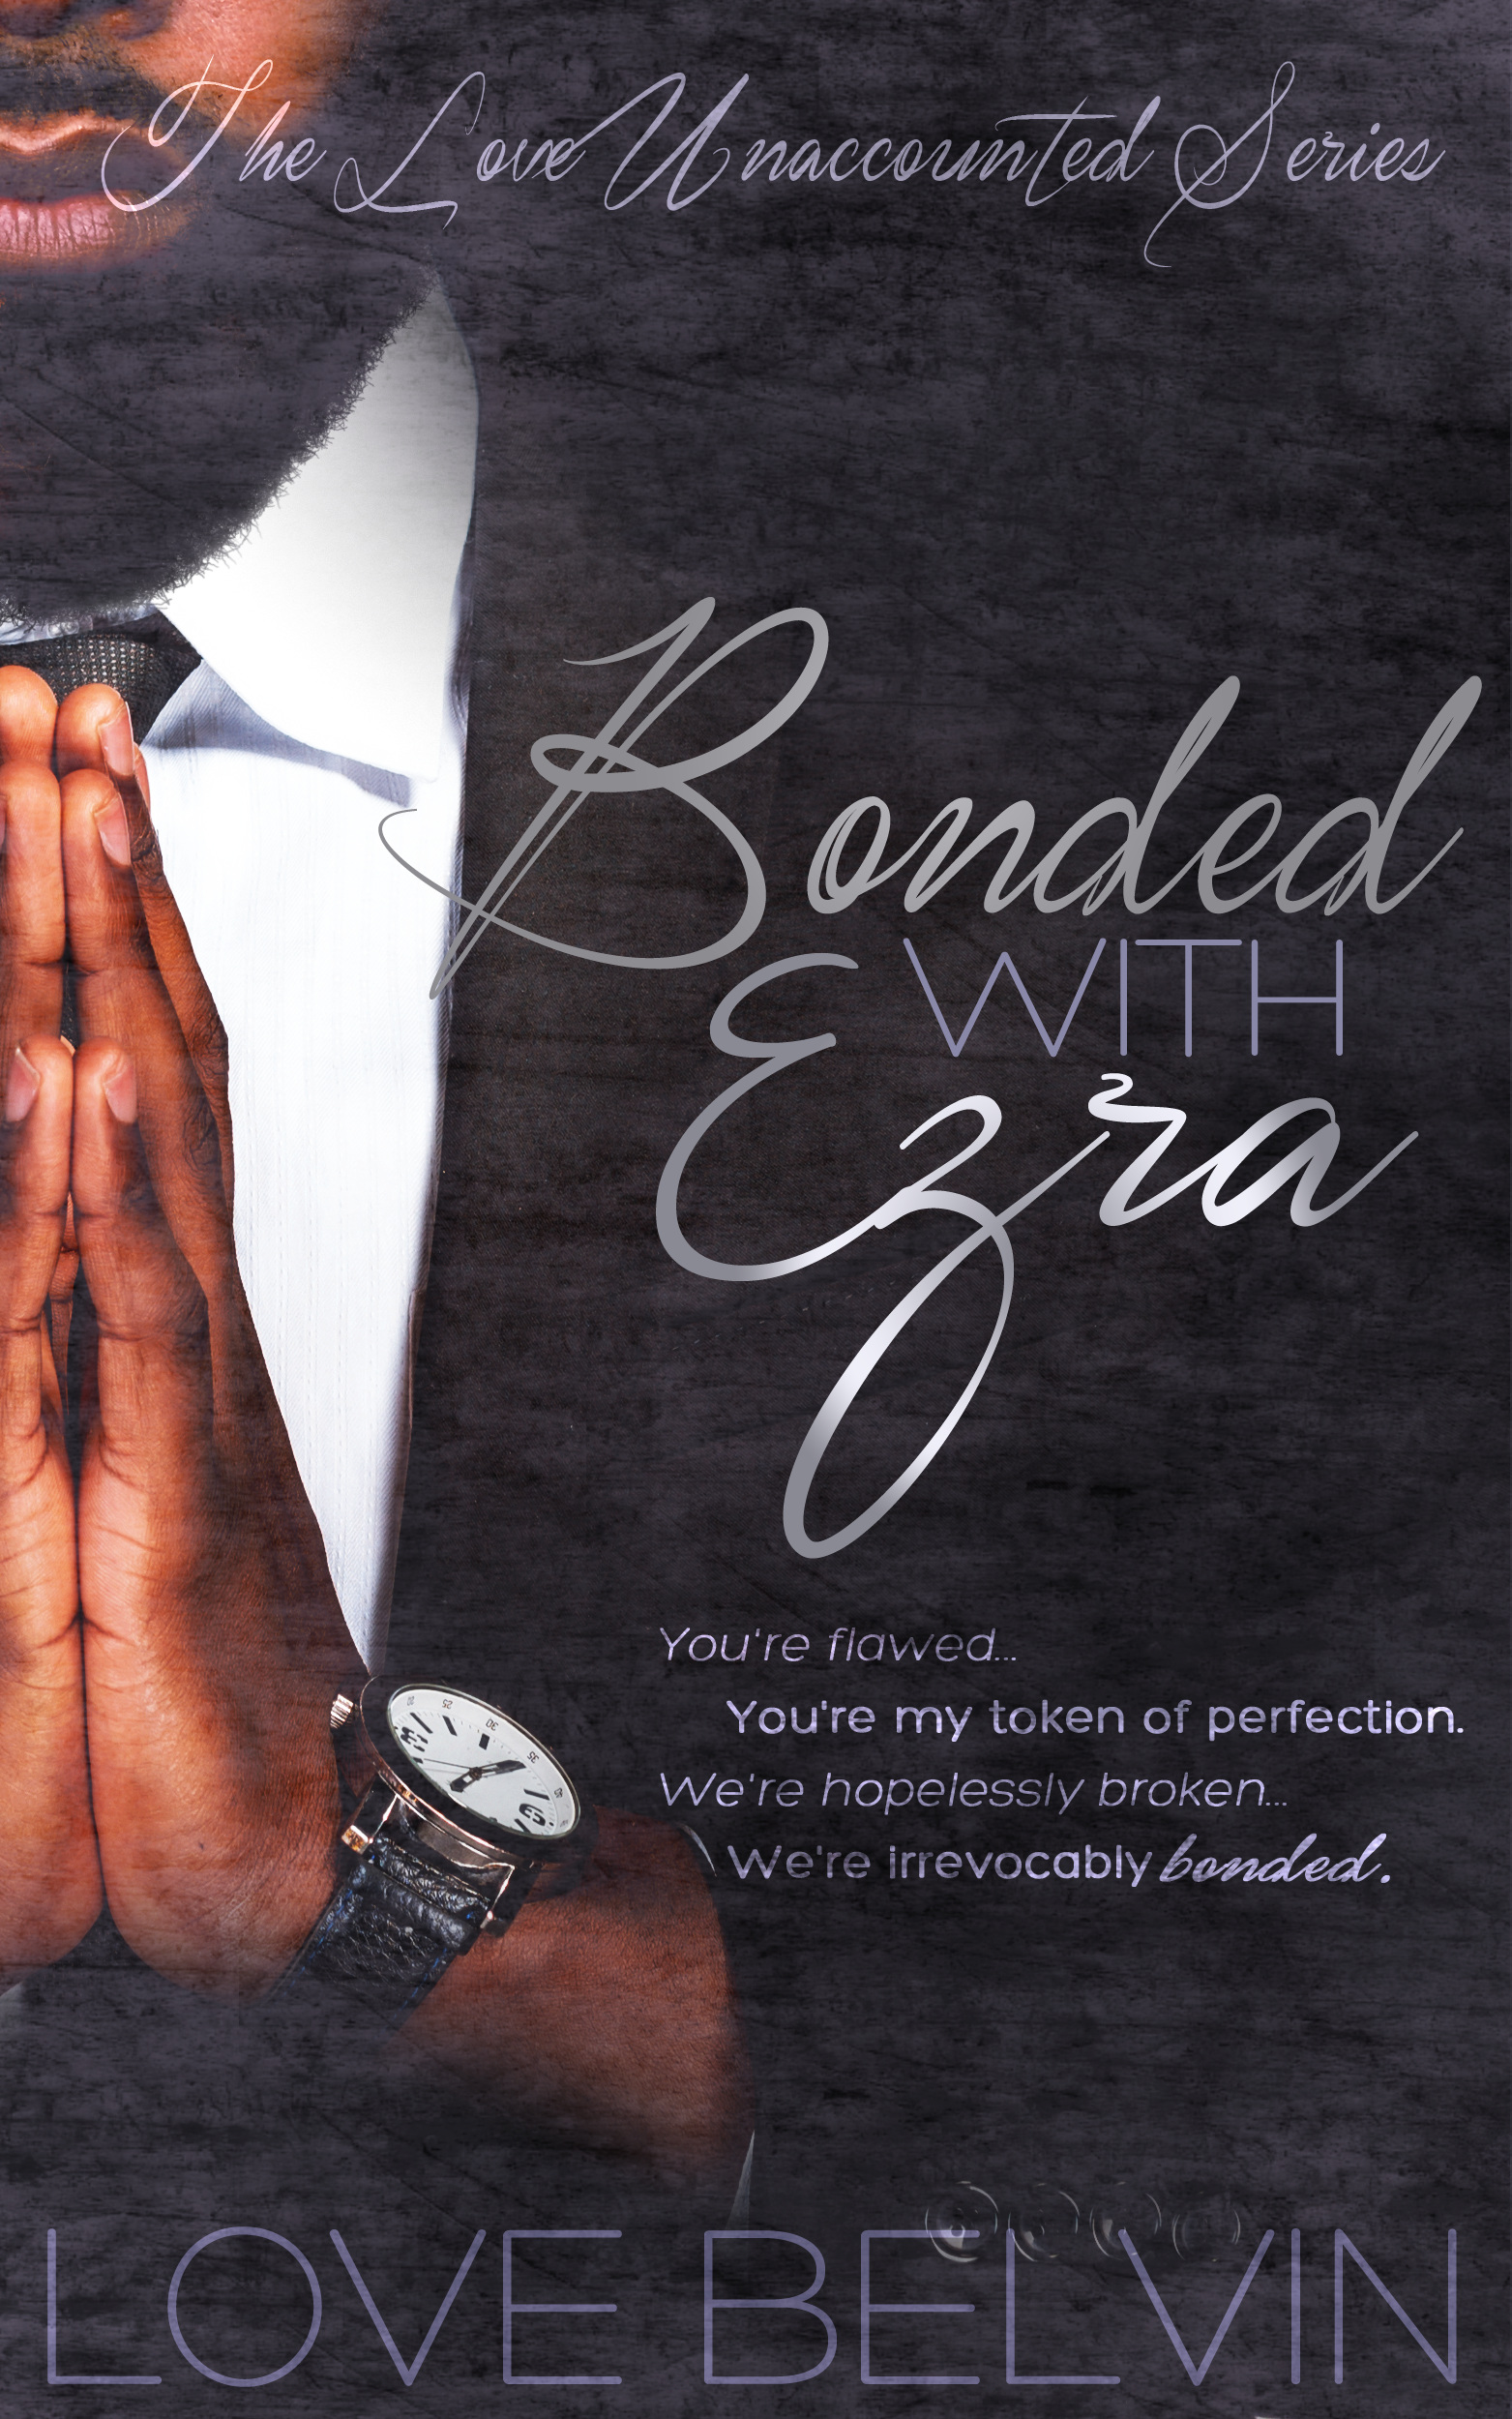 Bonded With Ezra (book 3 of L.U.)